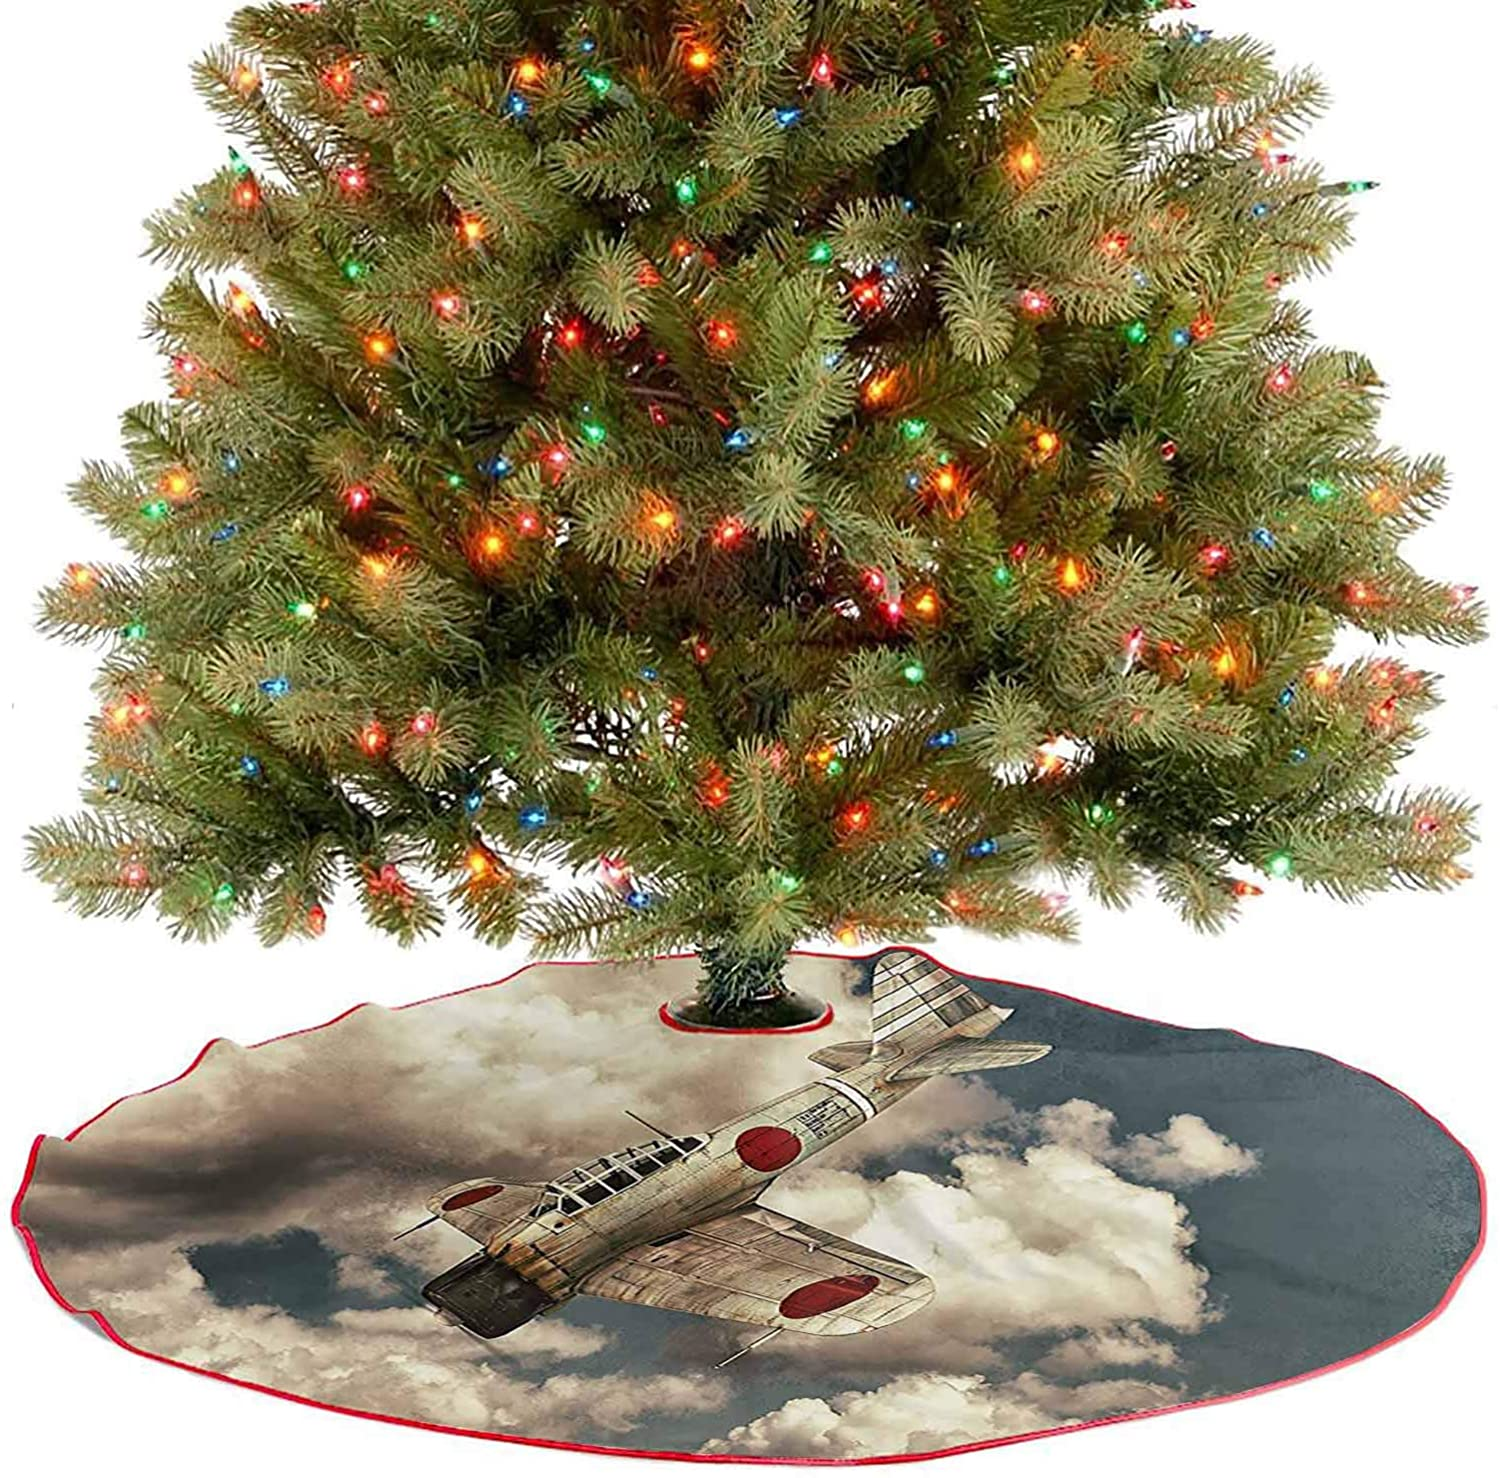 Rustic Xmas Tree Skirt Akutan Zero War Plane Flying Between Clouds Old Military Plane Model Aviation Paint Xmas Decoration Holiday Ornaments for Xmas Holiday Party Decoration - 48 Inch